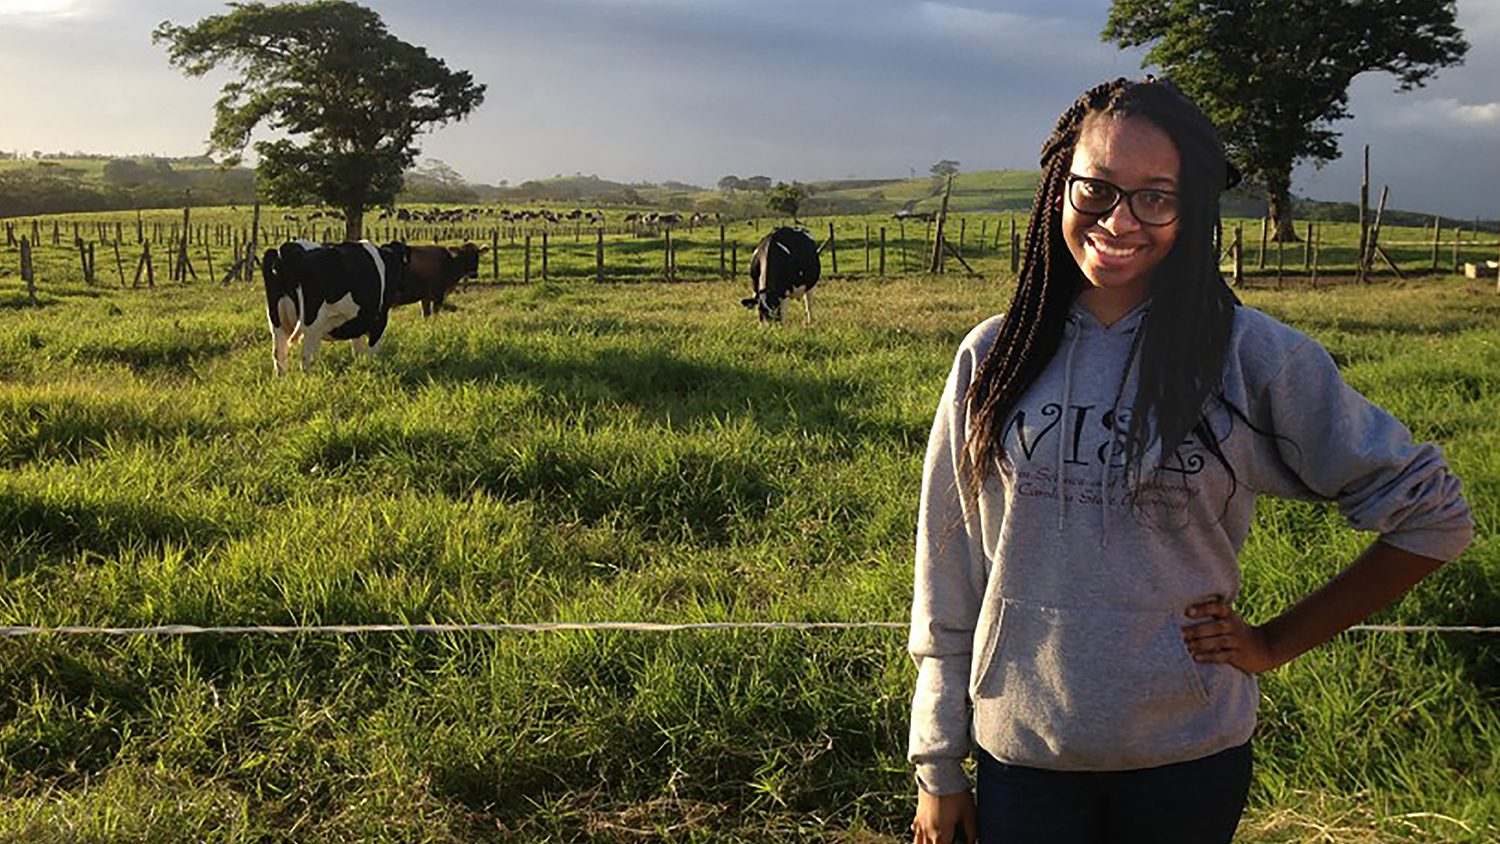 CALS student Nashea Williams standing in front of cows in a field.